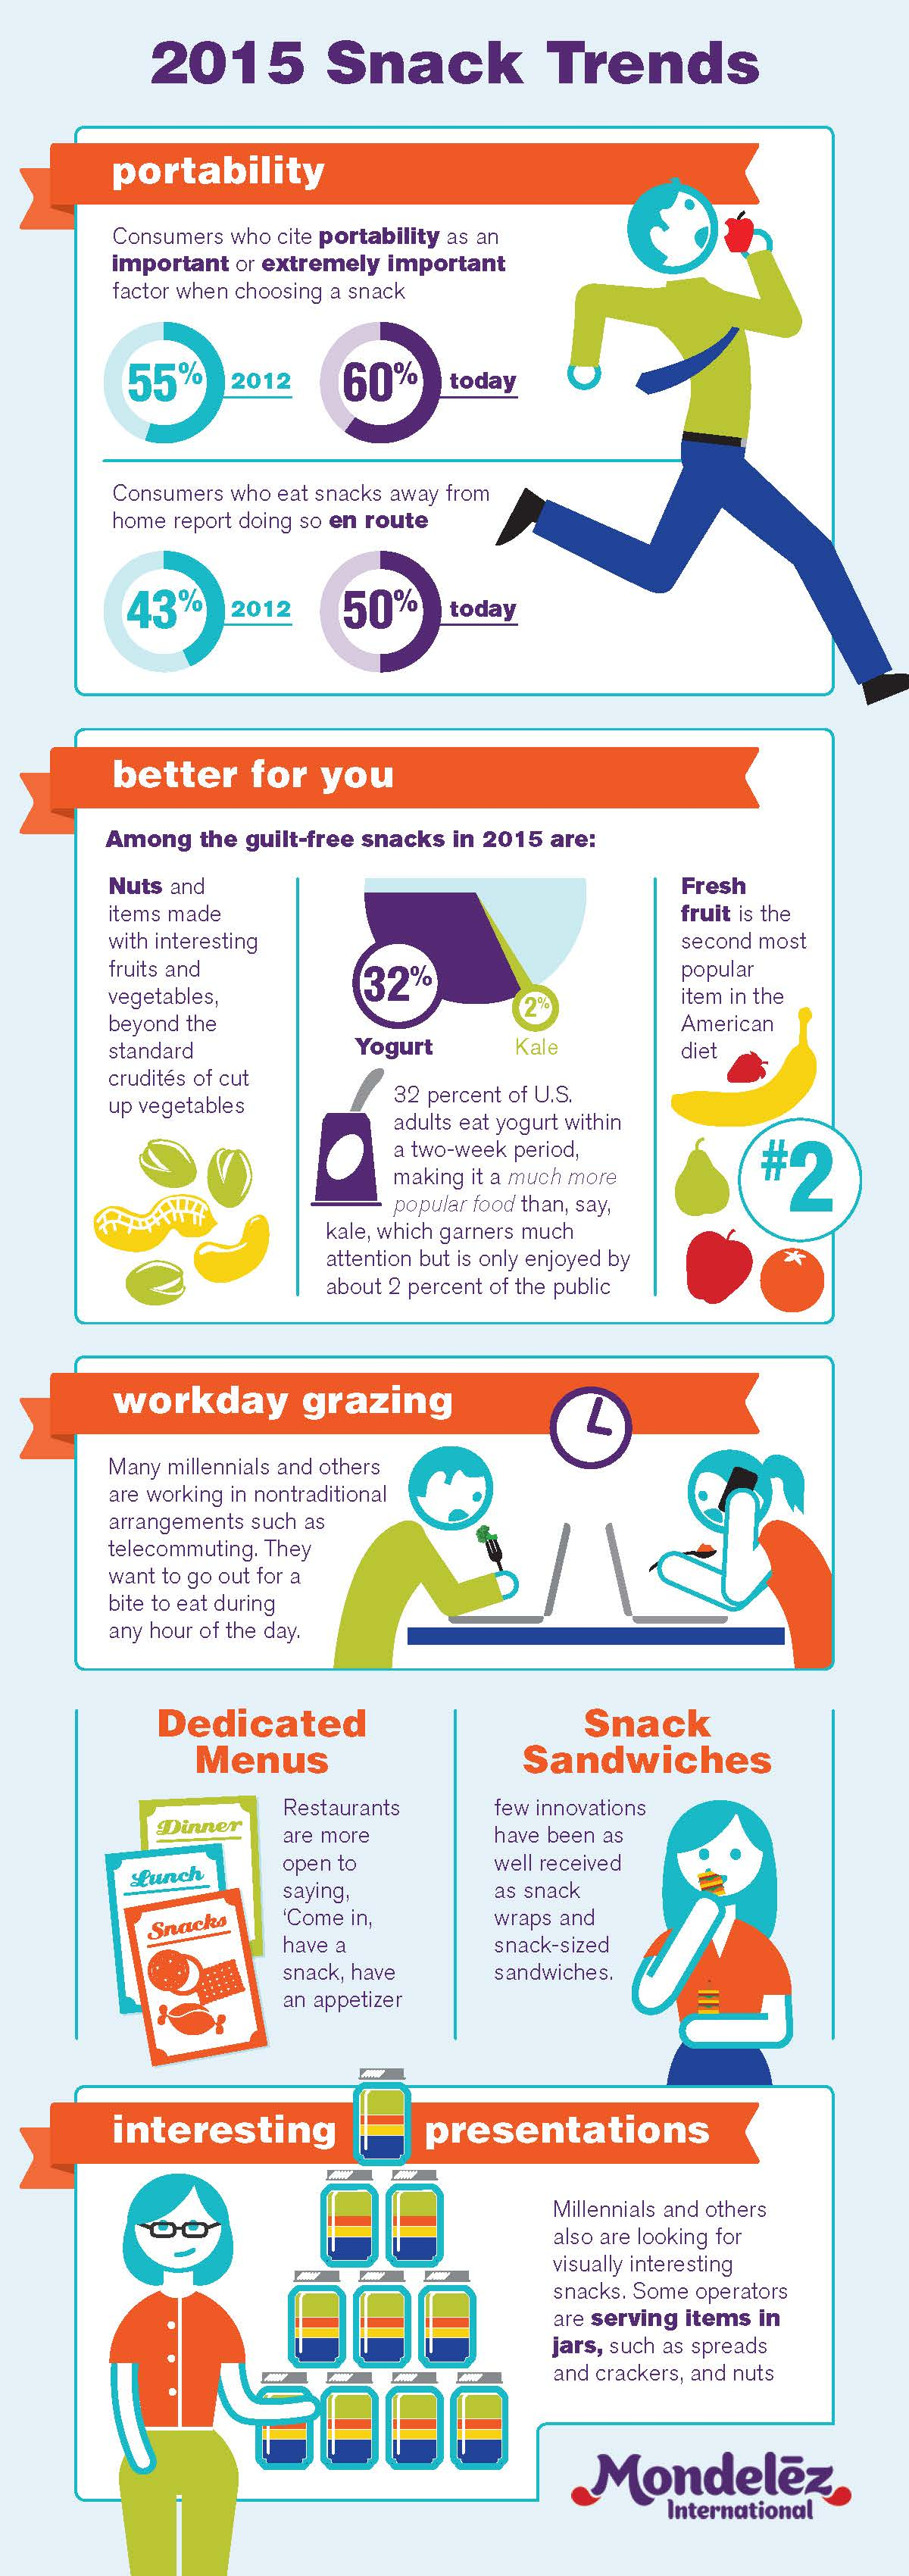 2015 Snack Trends Infographic